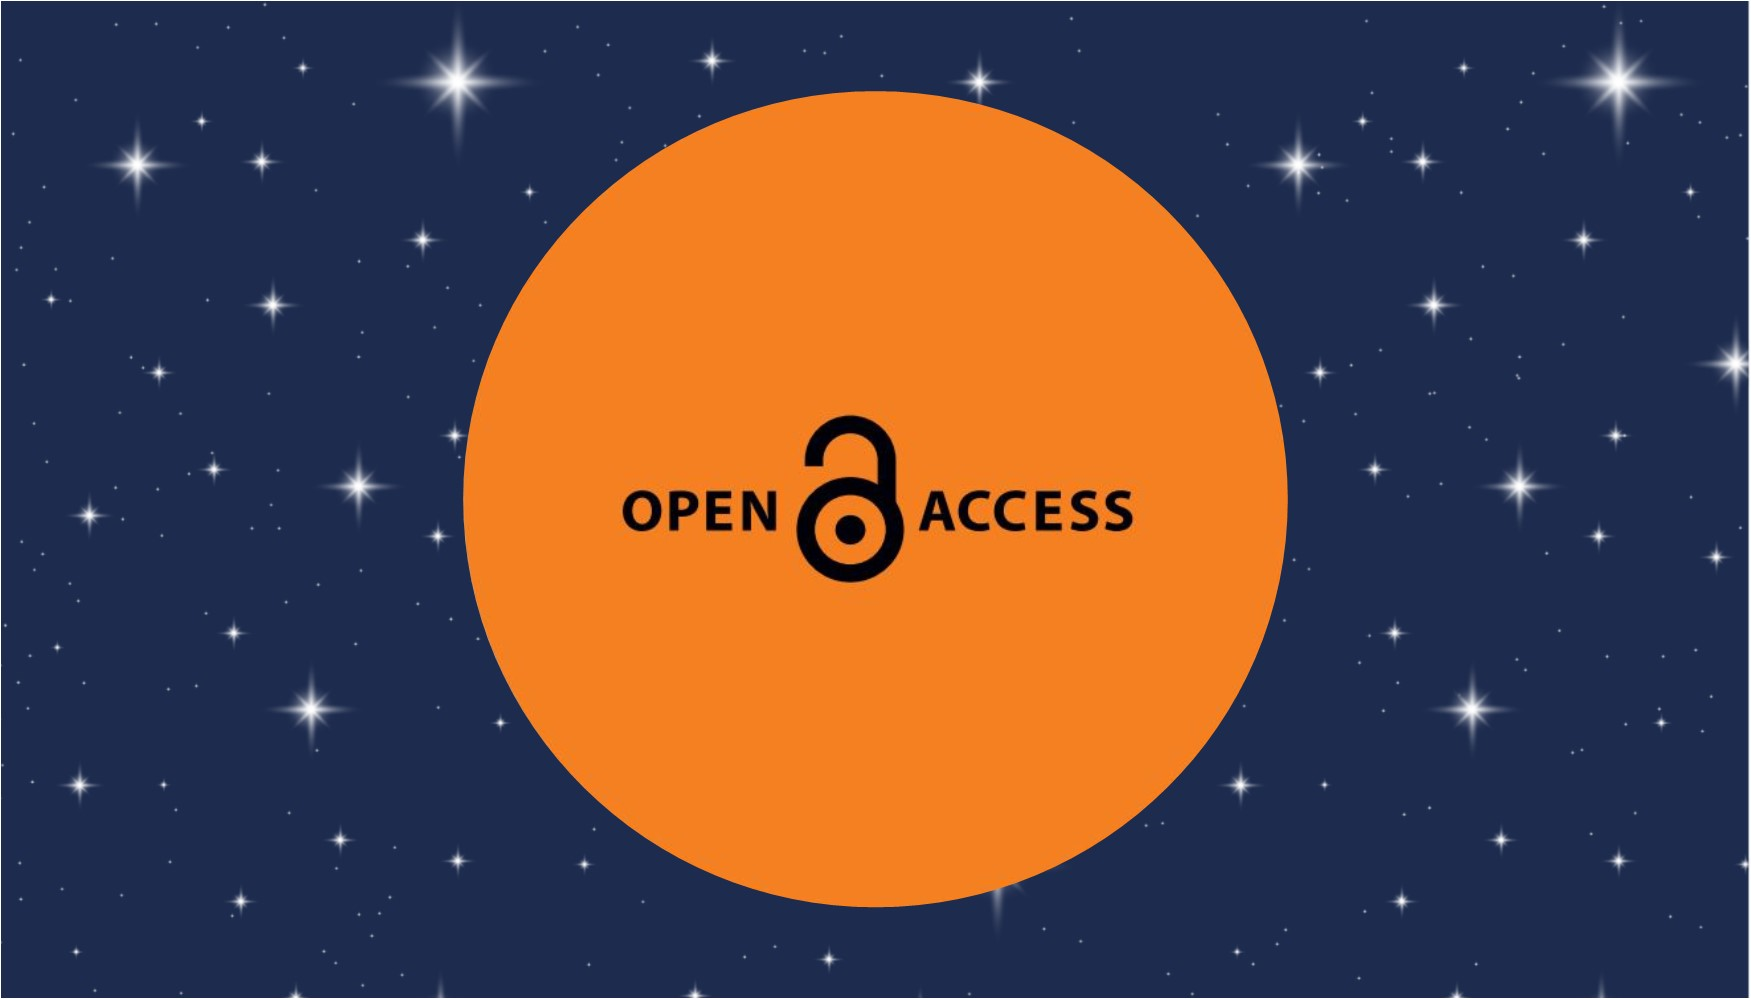 Our Open Access year